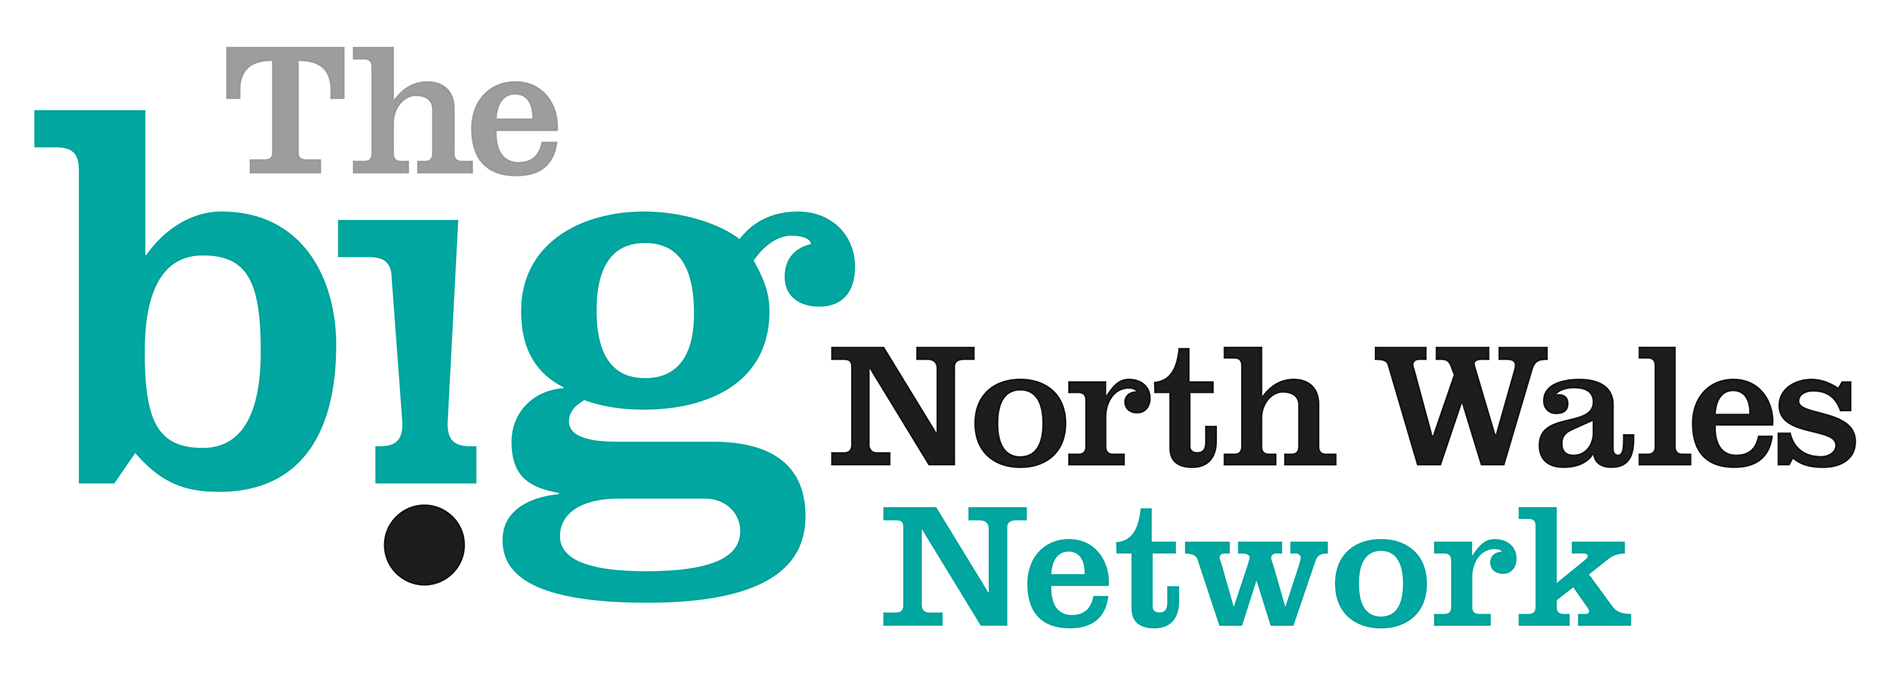 THE BIG NORTH WALES NETWORK - Network She